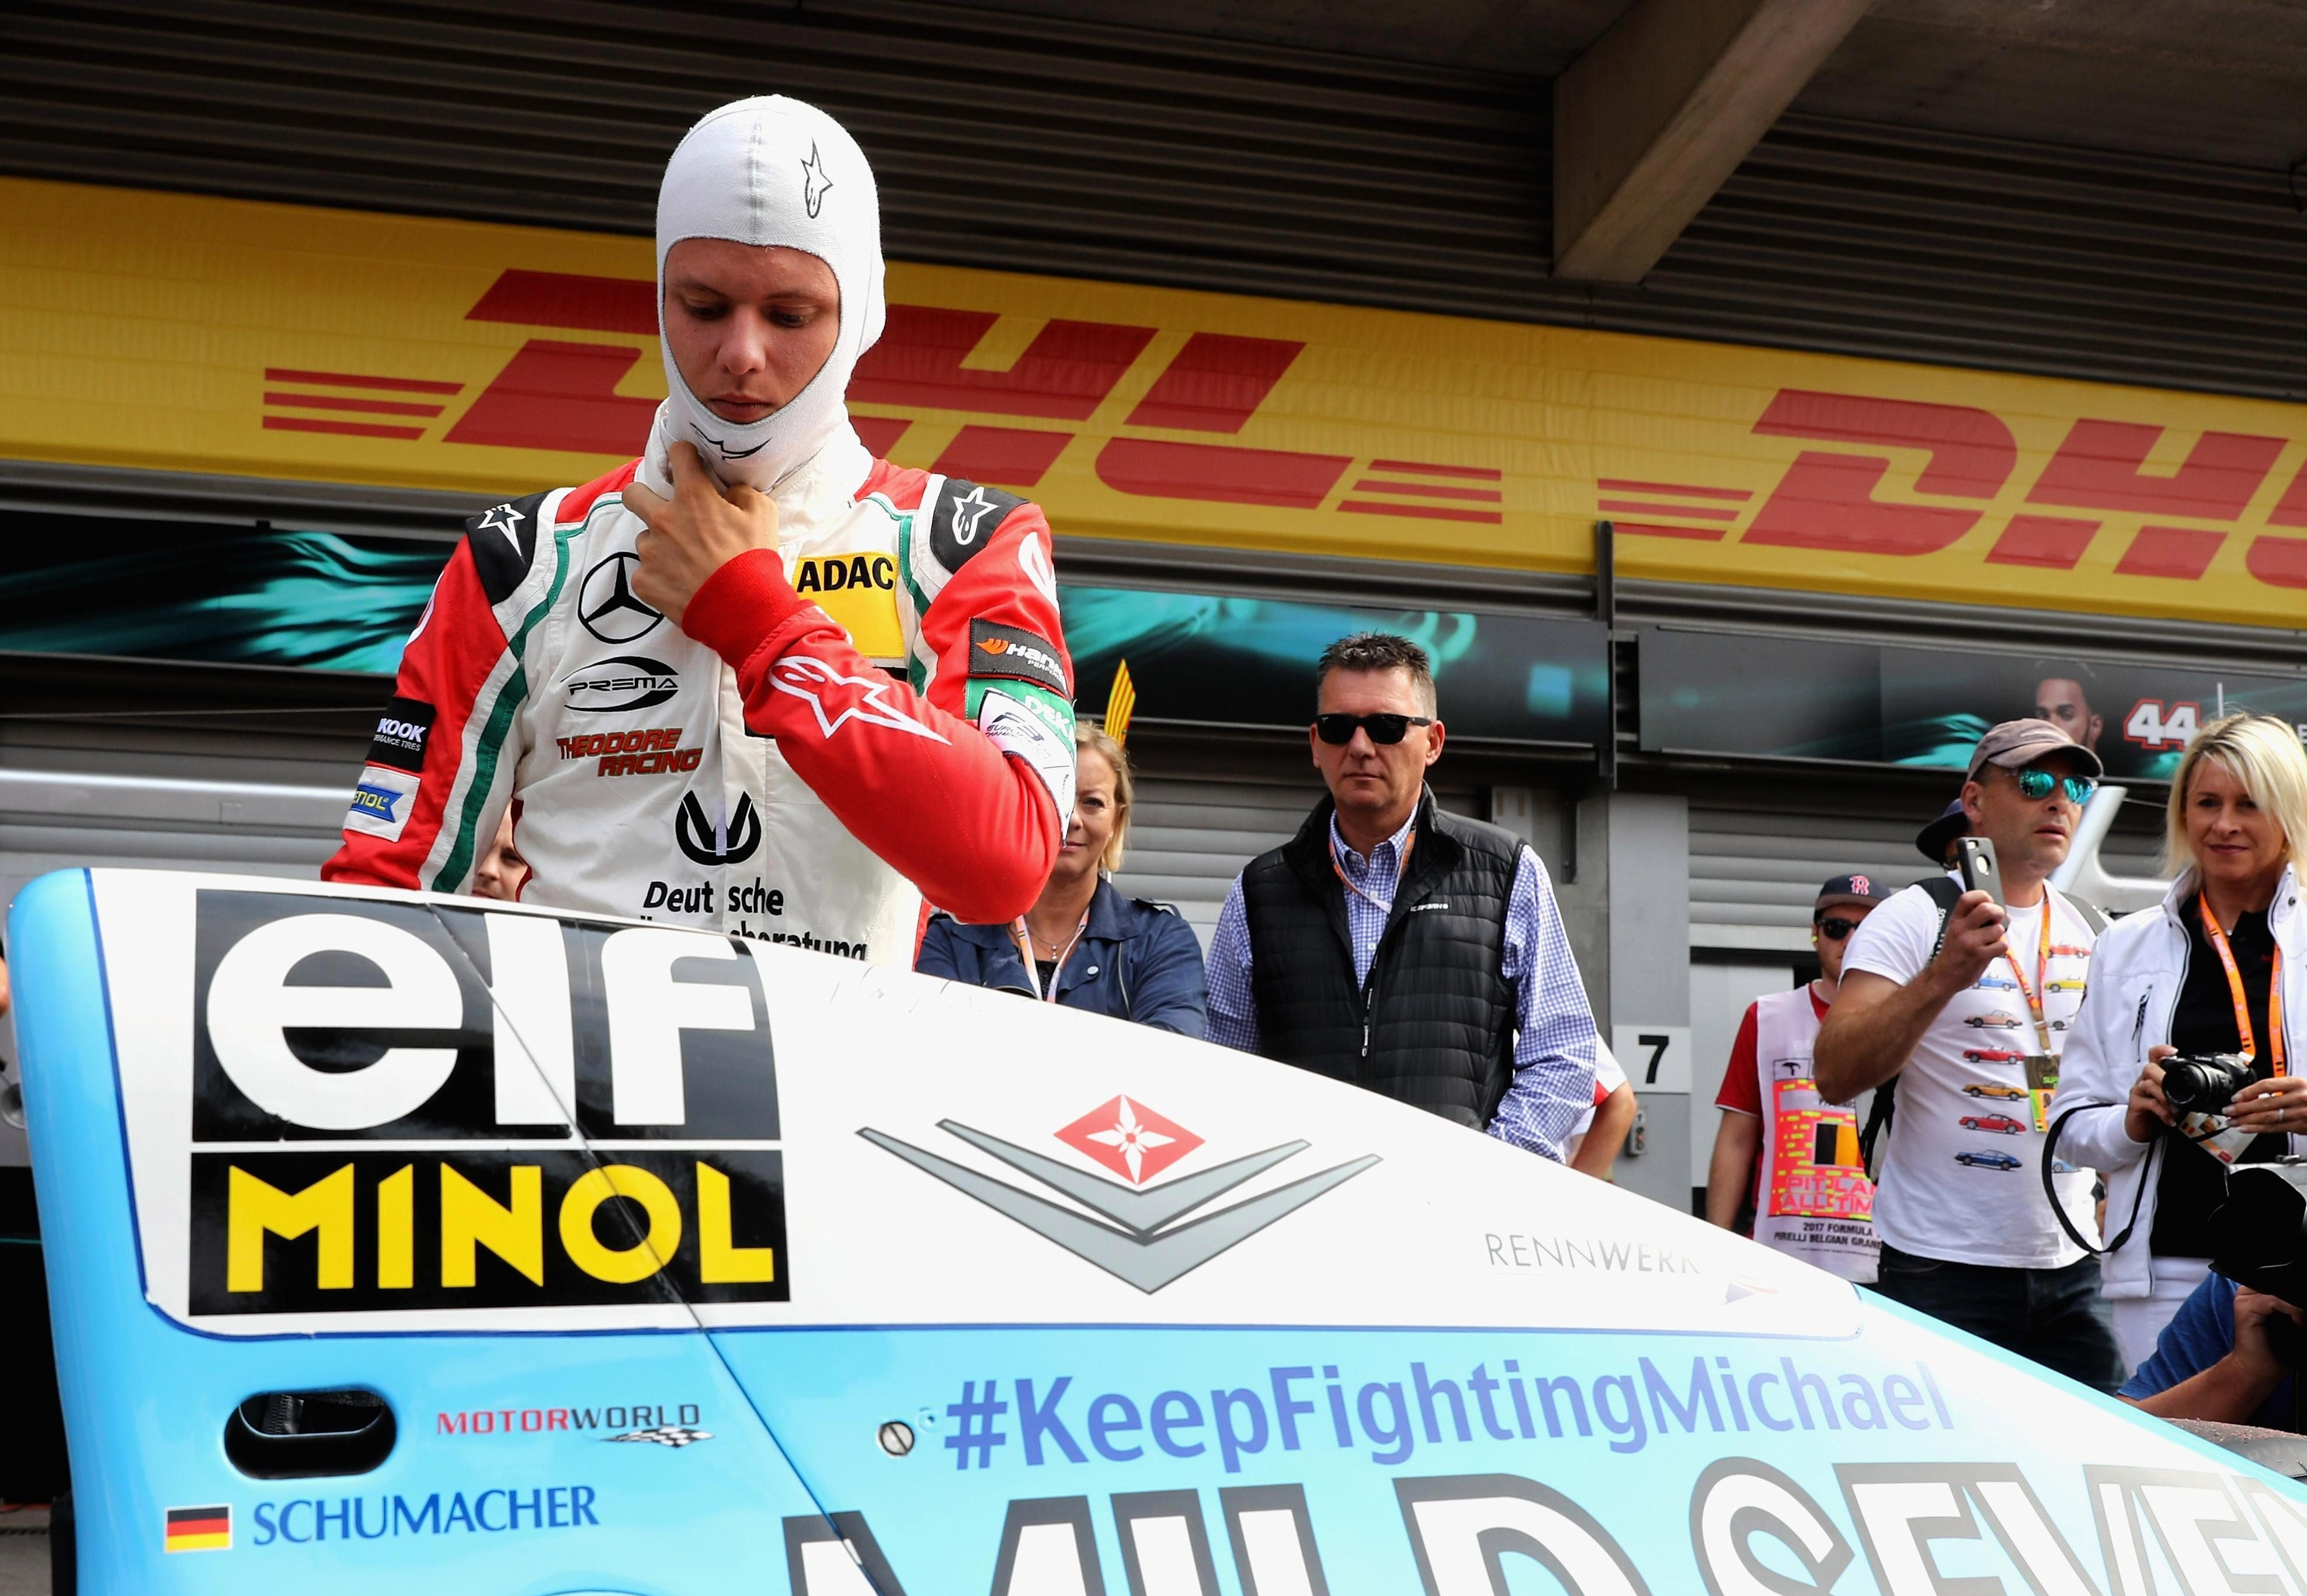 Mick Schumacher has aspirations of following in his fathers footsteps